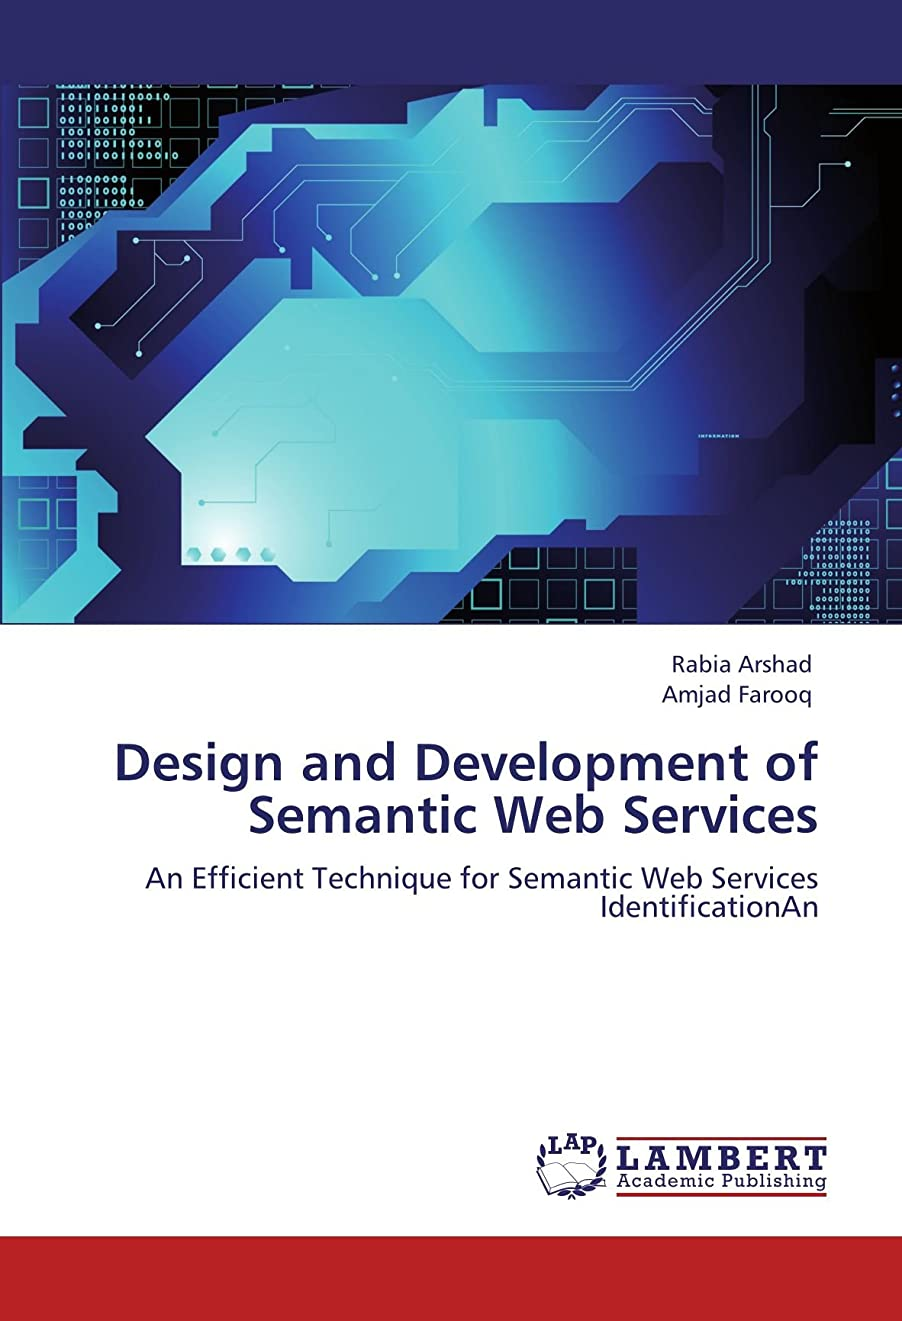 仮定、想定。推測維持人類Design and Development of Semantic Web Services